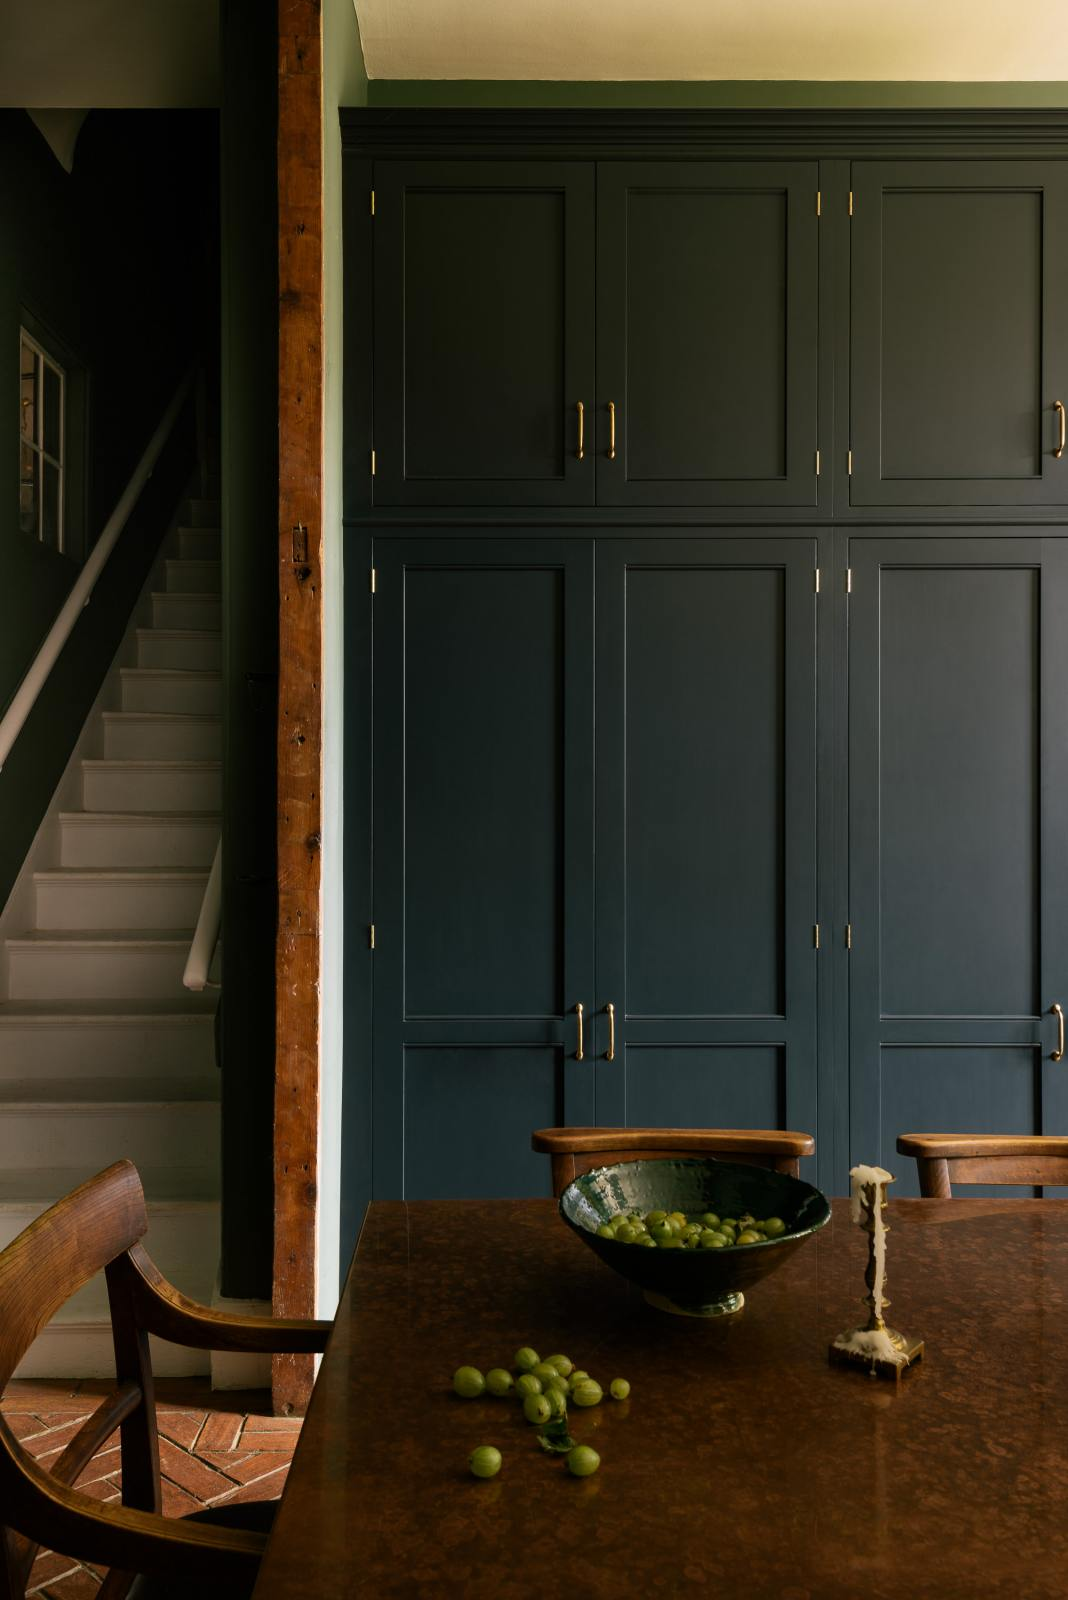 The Nordroom - The Victorian Rectory Kitchen by deVOL